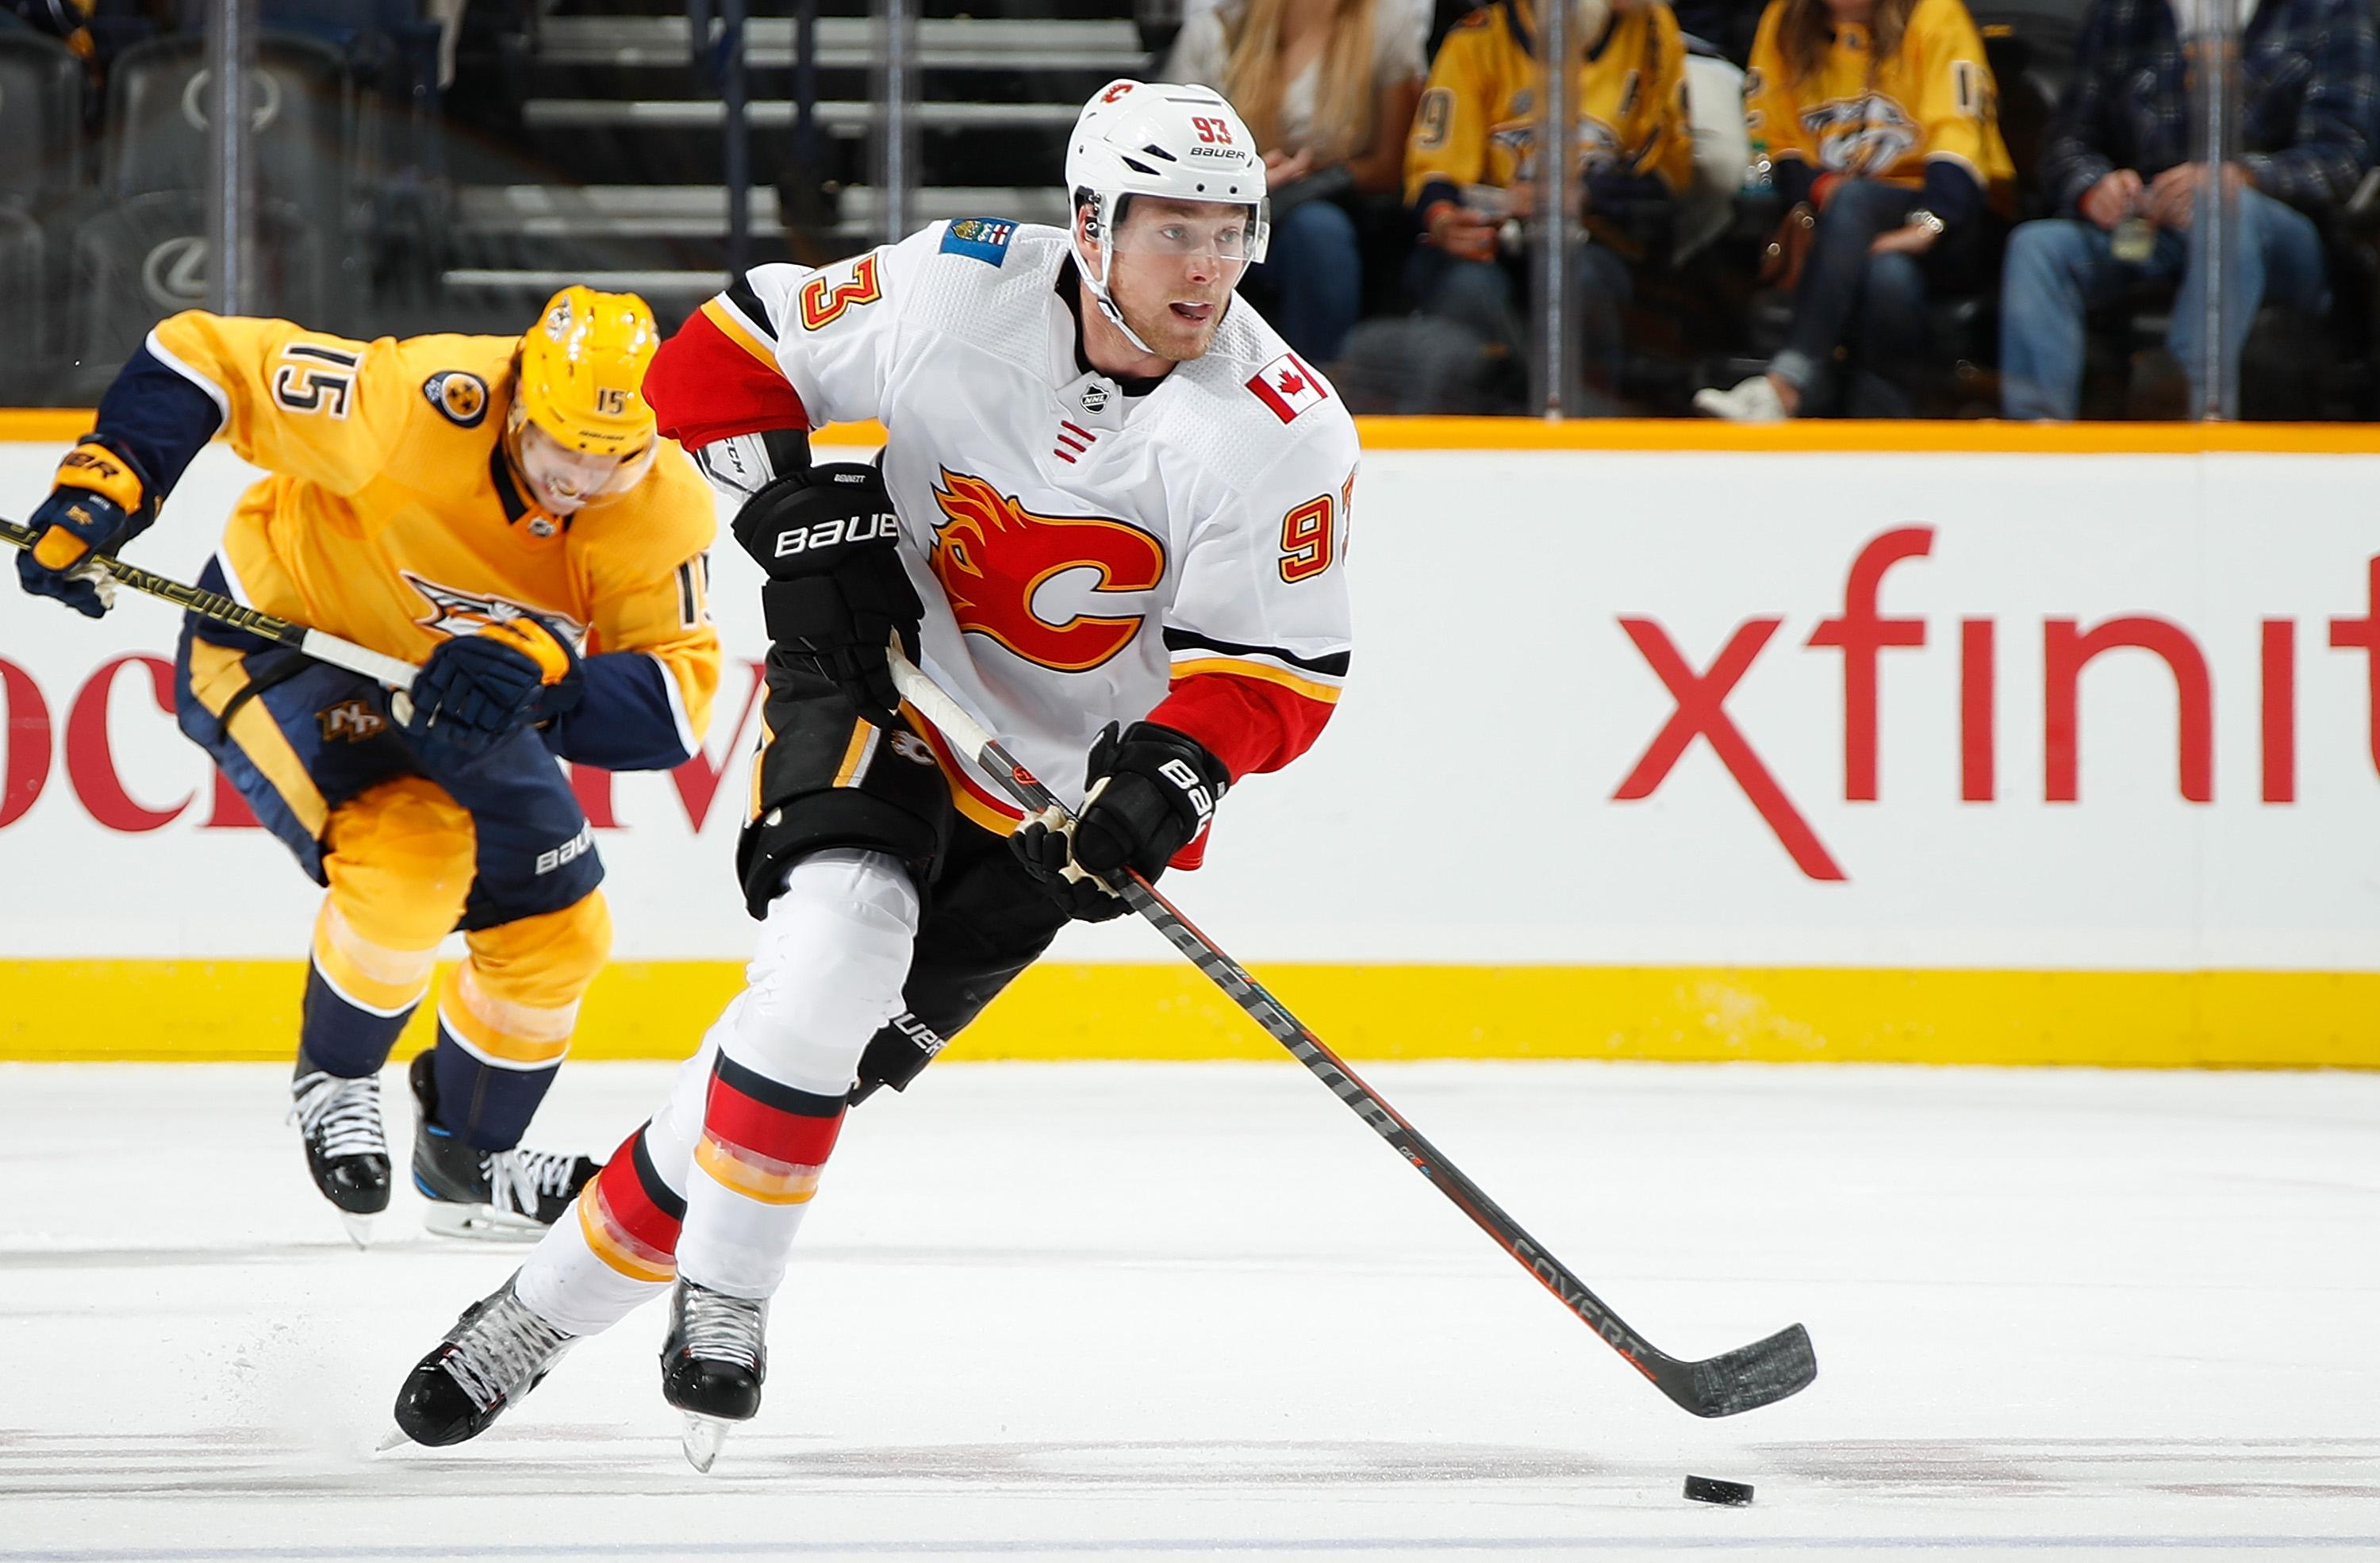 INSIDE EDGE HOCKEY NEWS – RADIO SHOW | EPISODE 10 Player Survey, Calgary Flames Outlook, and Dirtiest Player